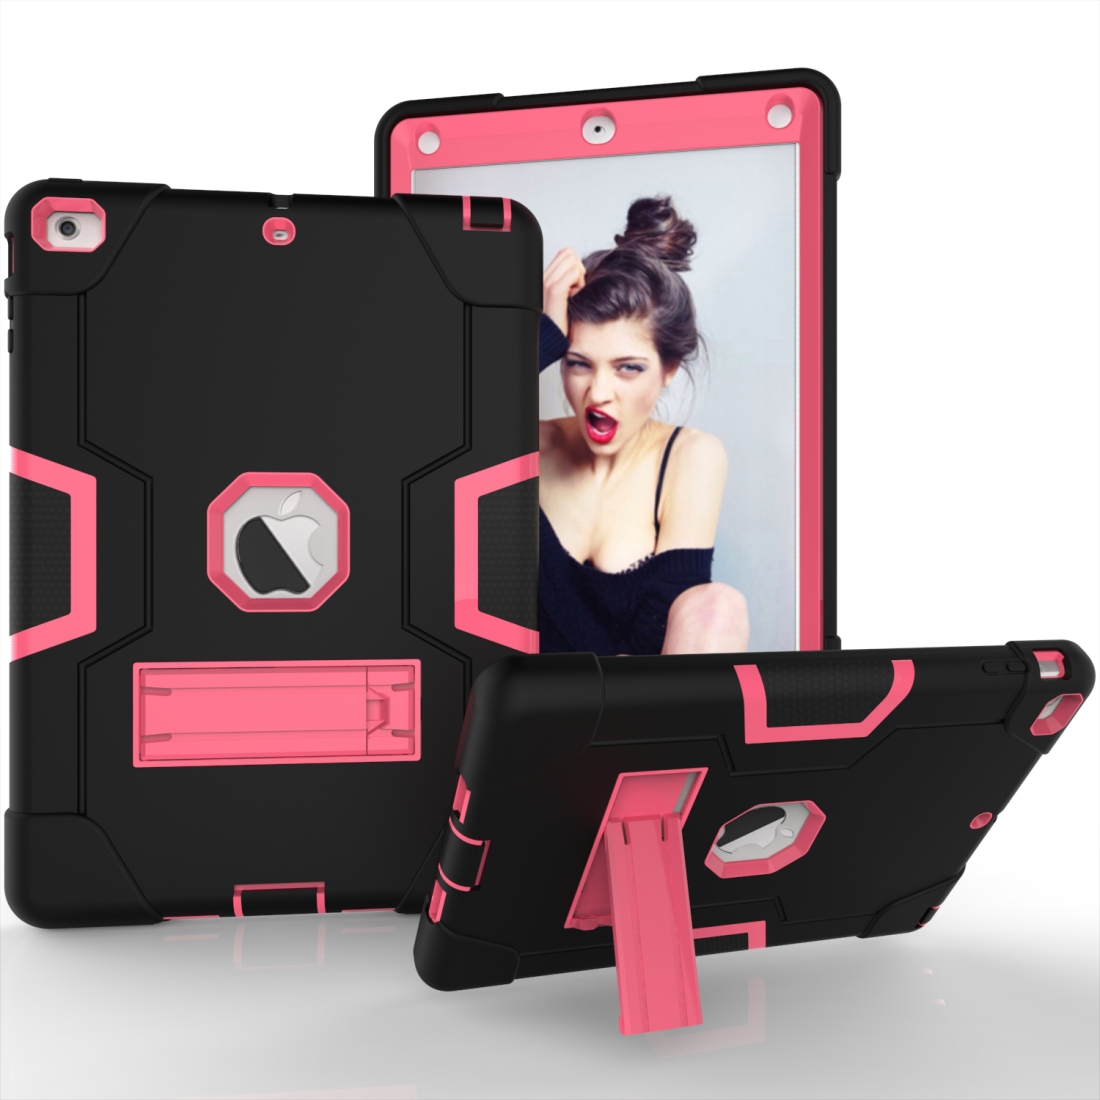 iPad Air Cover Featuring Contrasting Colors In A Tough Durable Protective Armor Case (Black/Rose)